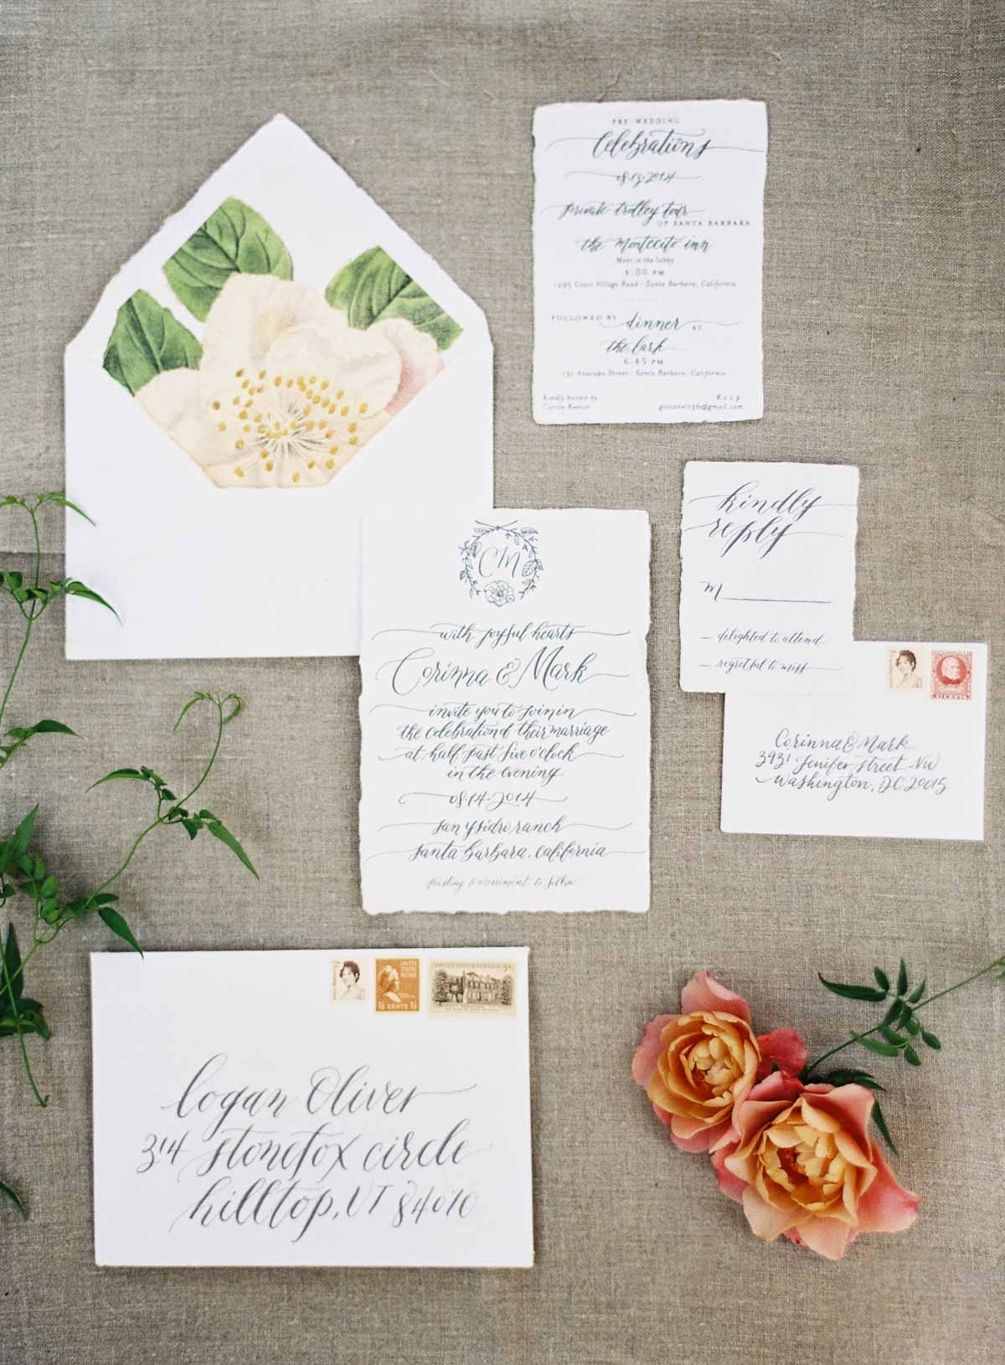 carolyn jane calligraphy | kurt boomer photography | joy proctor ...